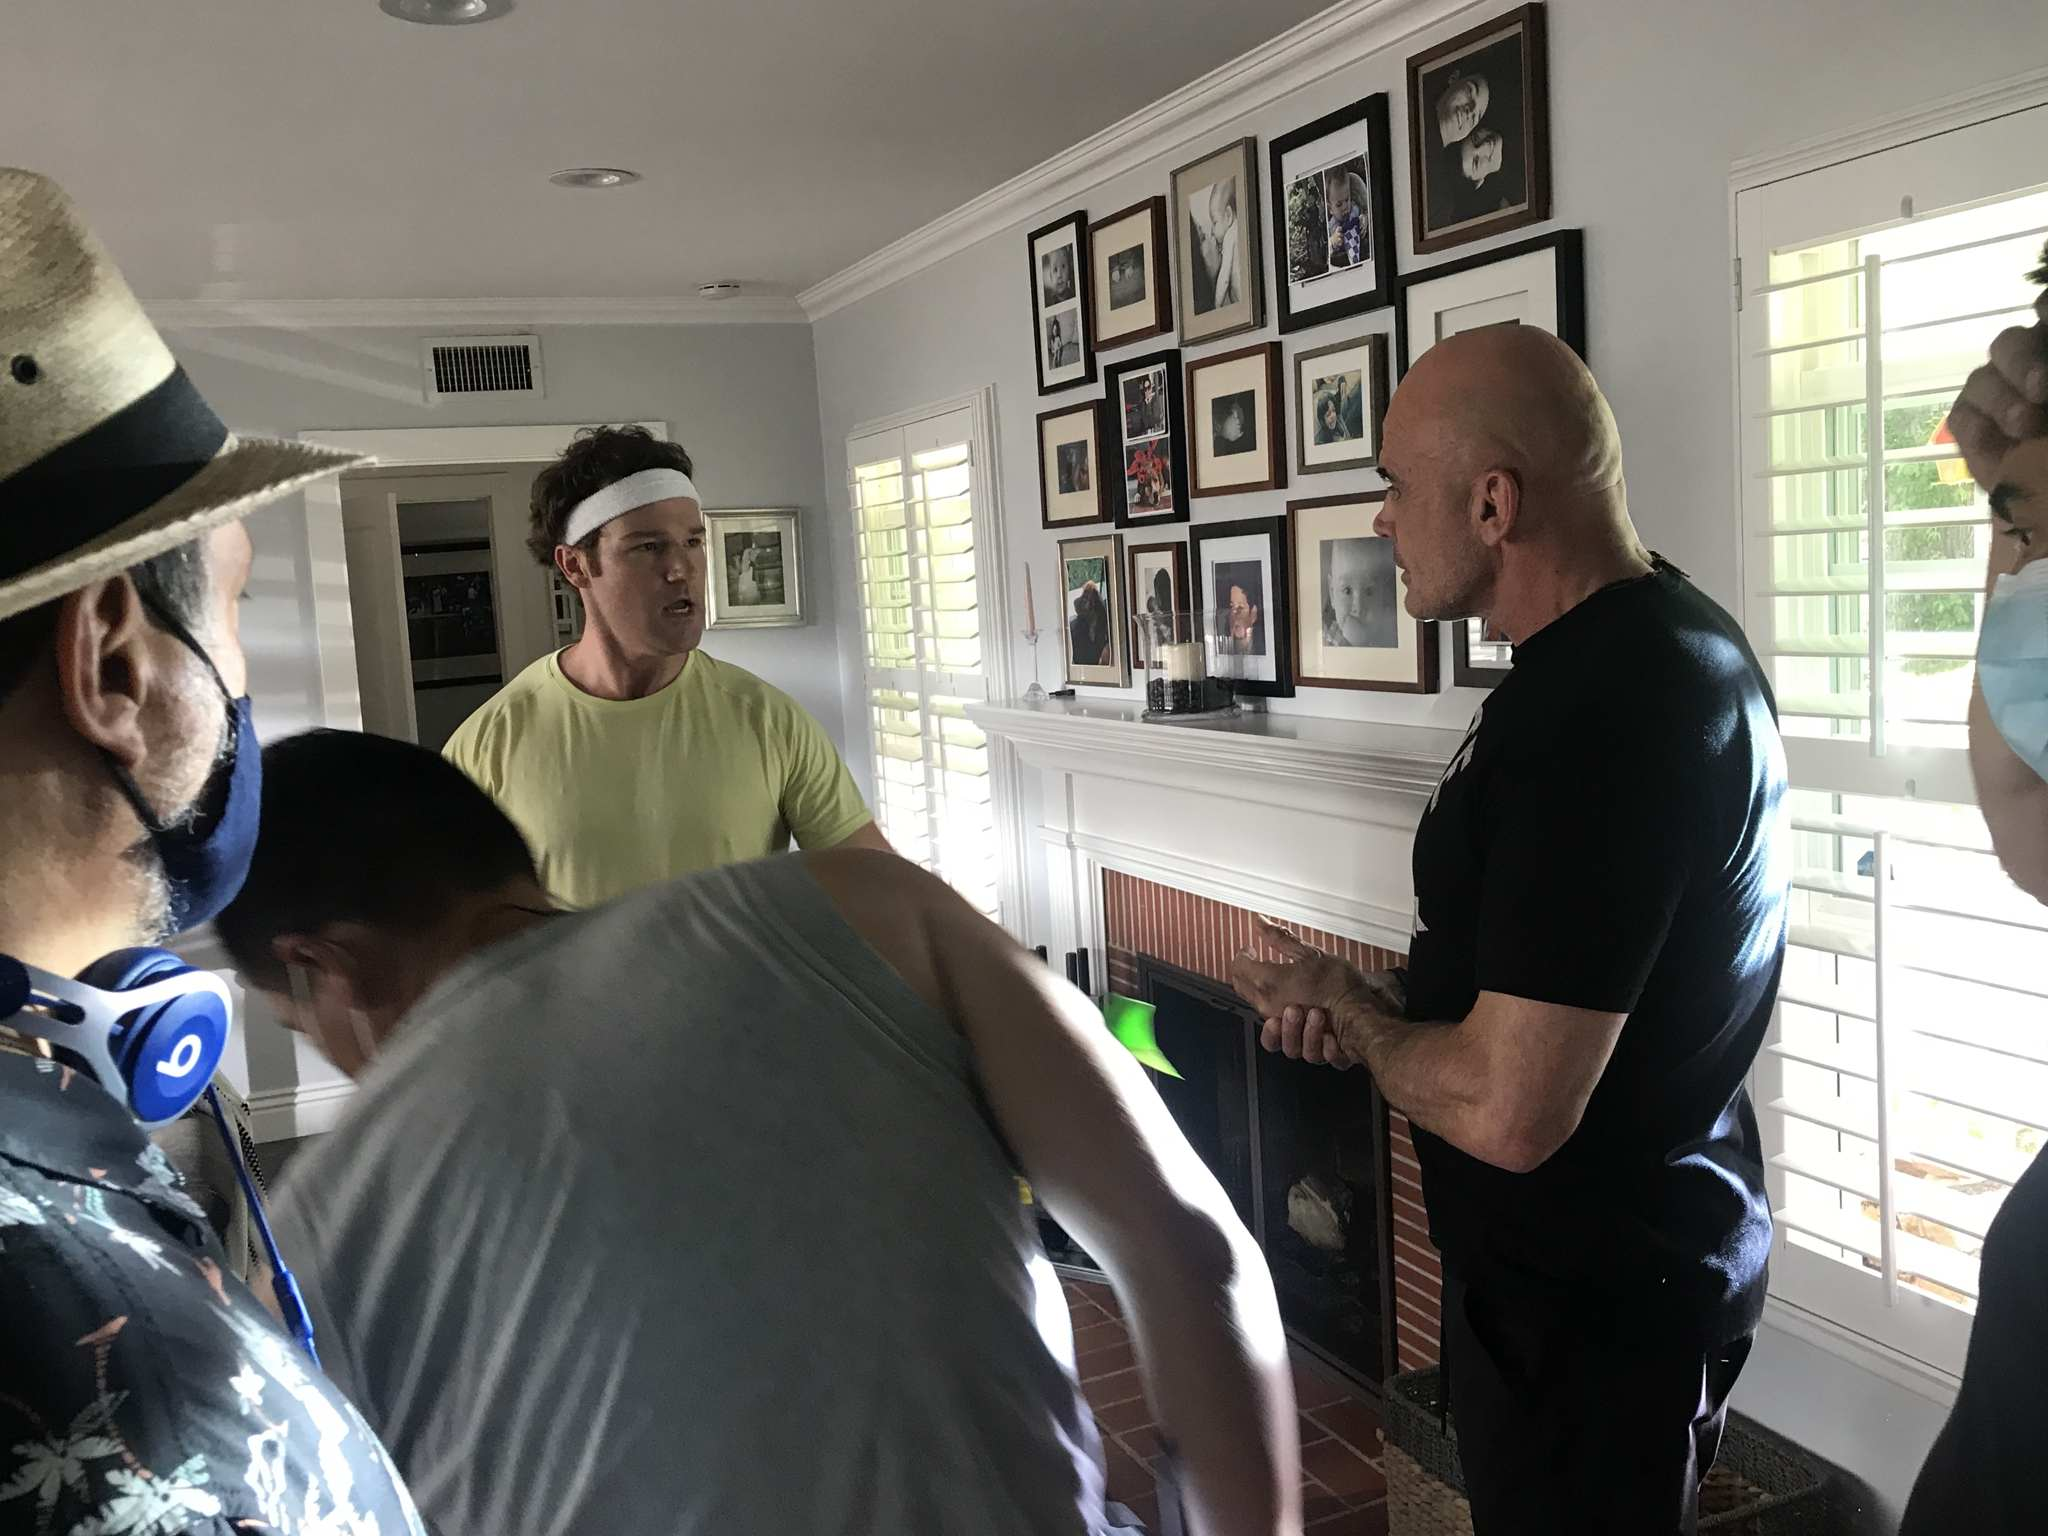 The hilarious Shane Hartline plays the twins farther, and here gets some training from MMA Superstar Bas Rutten